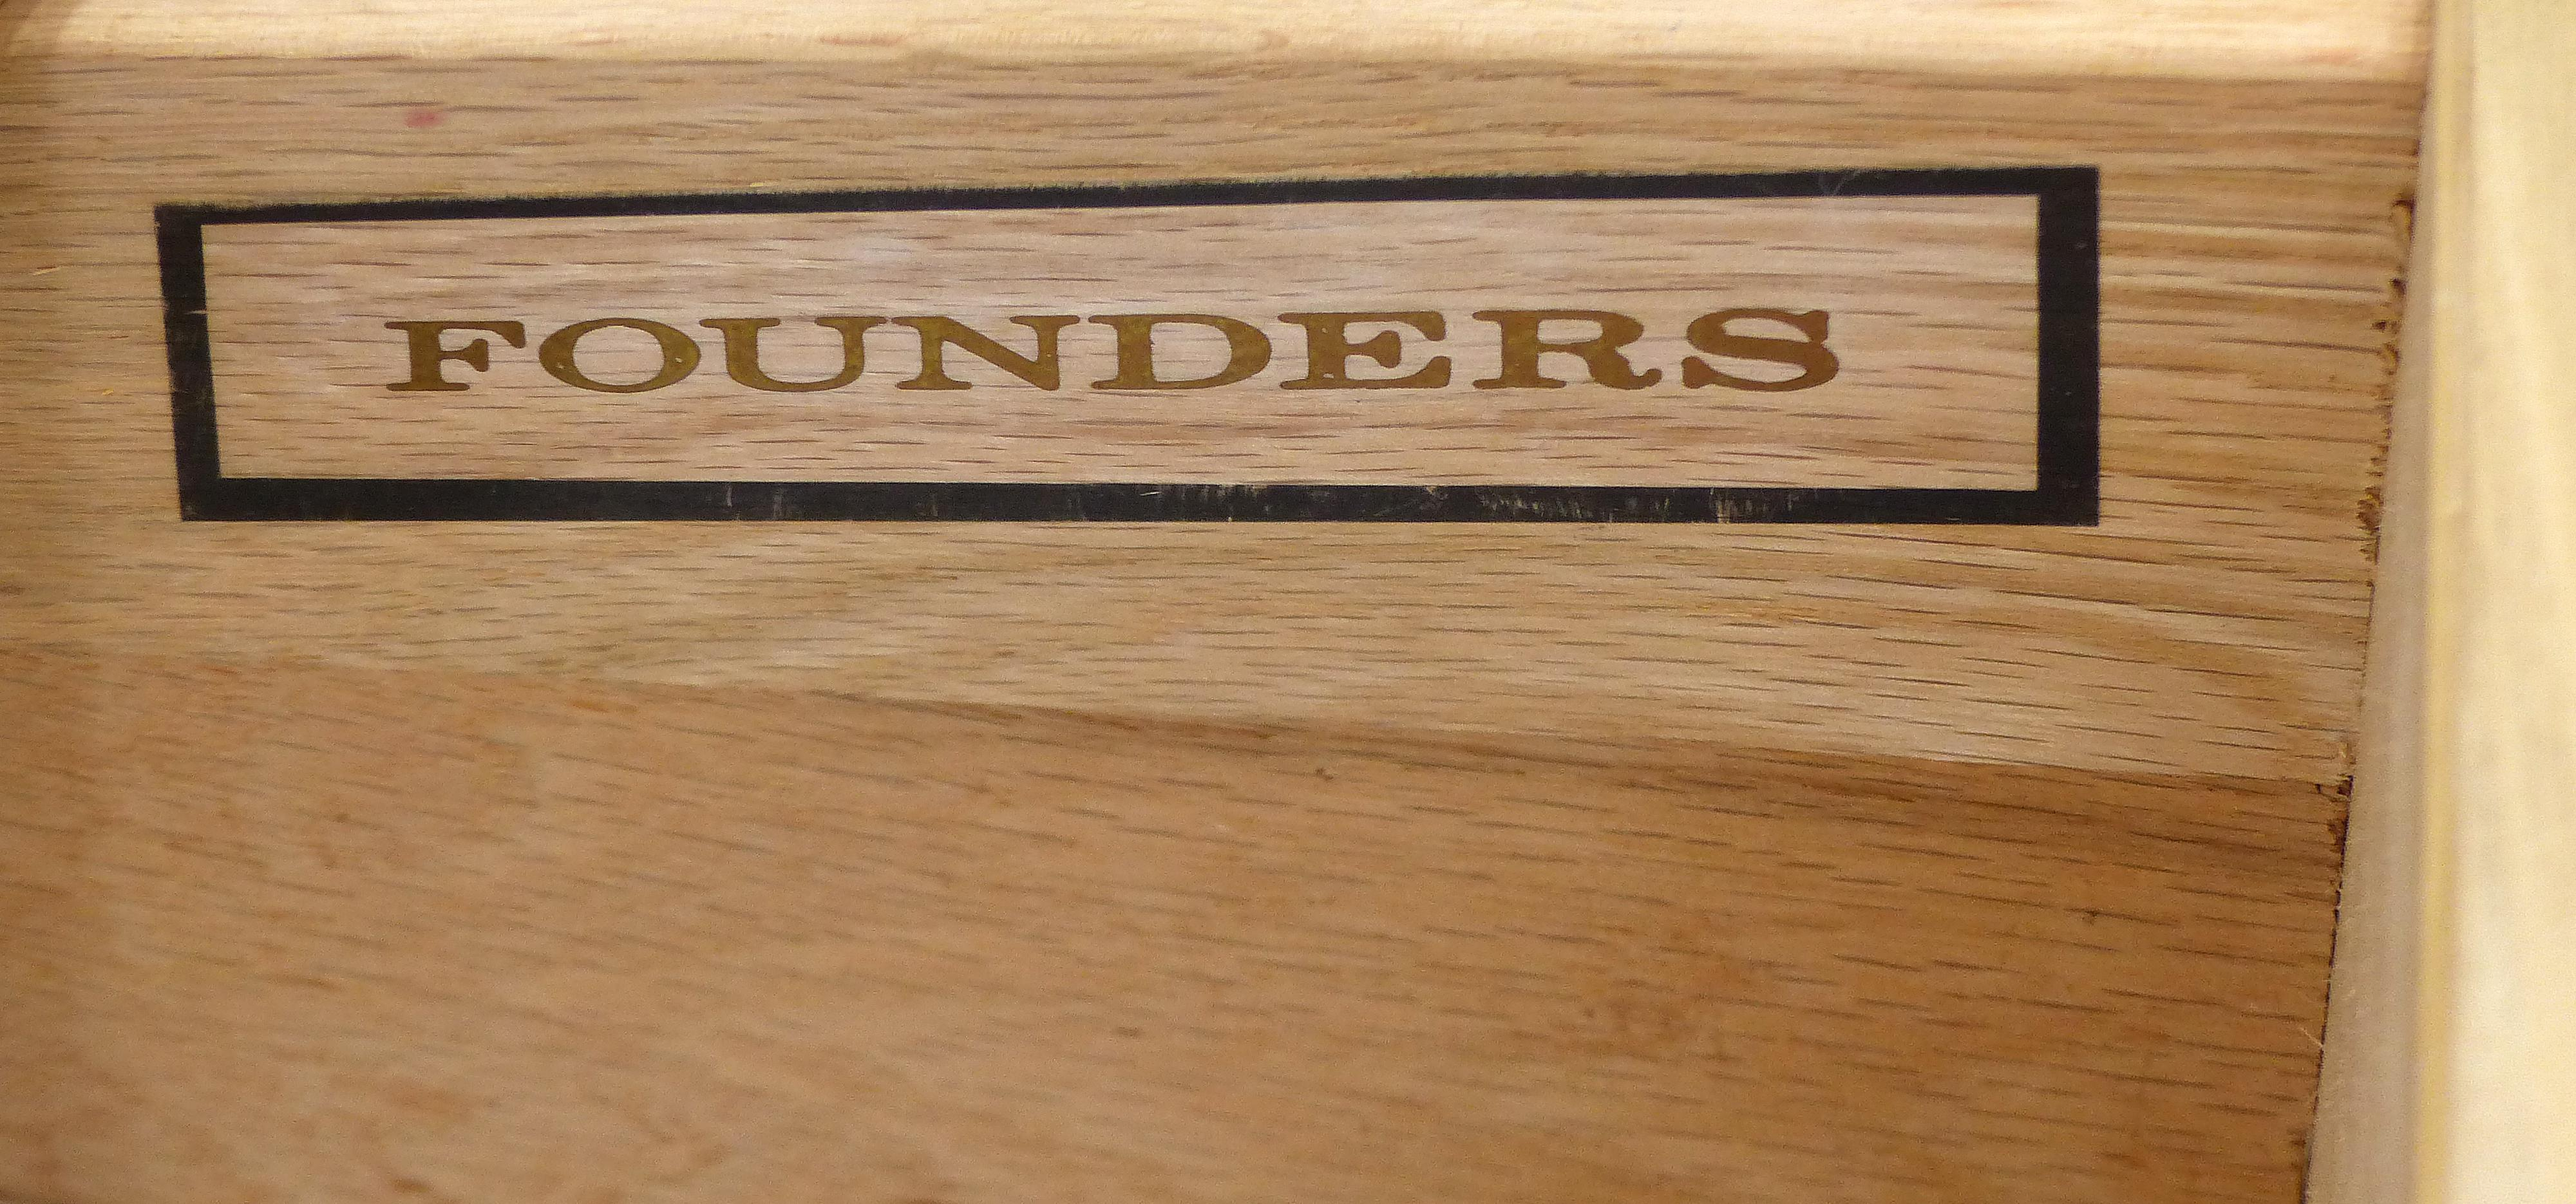 Mid Century Maple Dresser By Jack Cartwright For Founders Furniture   Image  6 Of 8